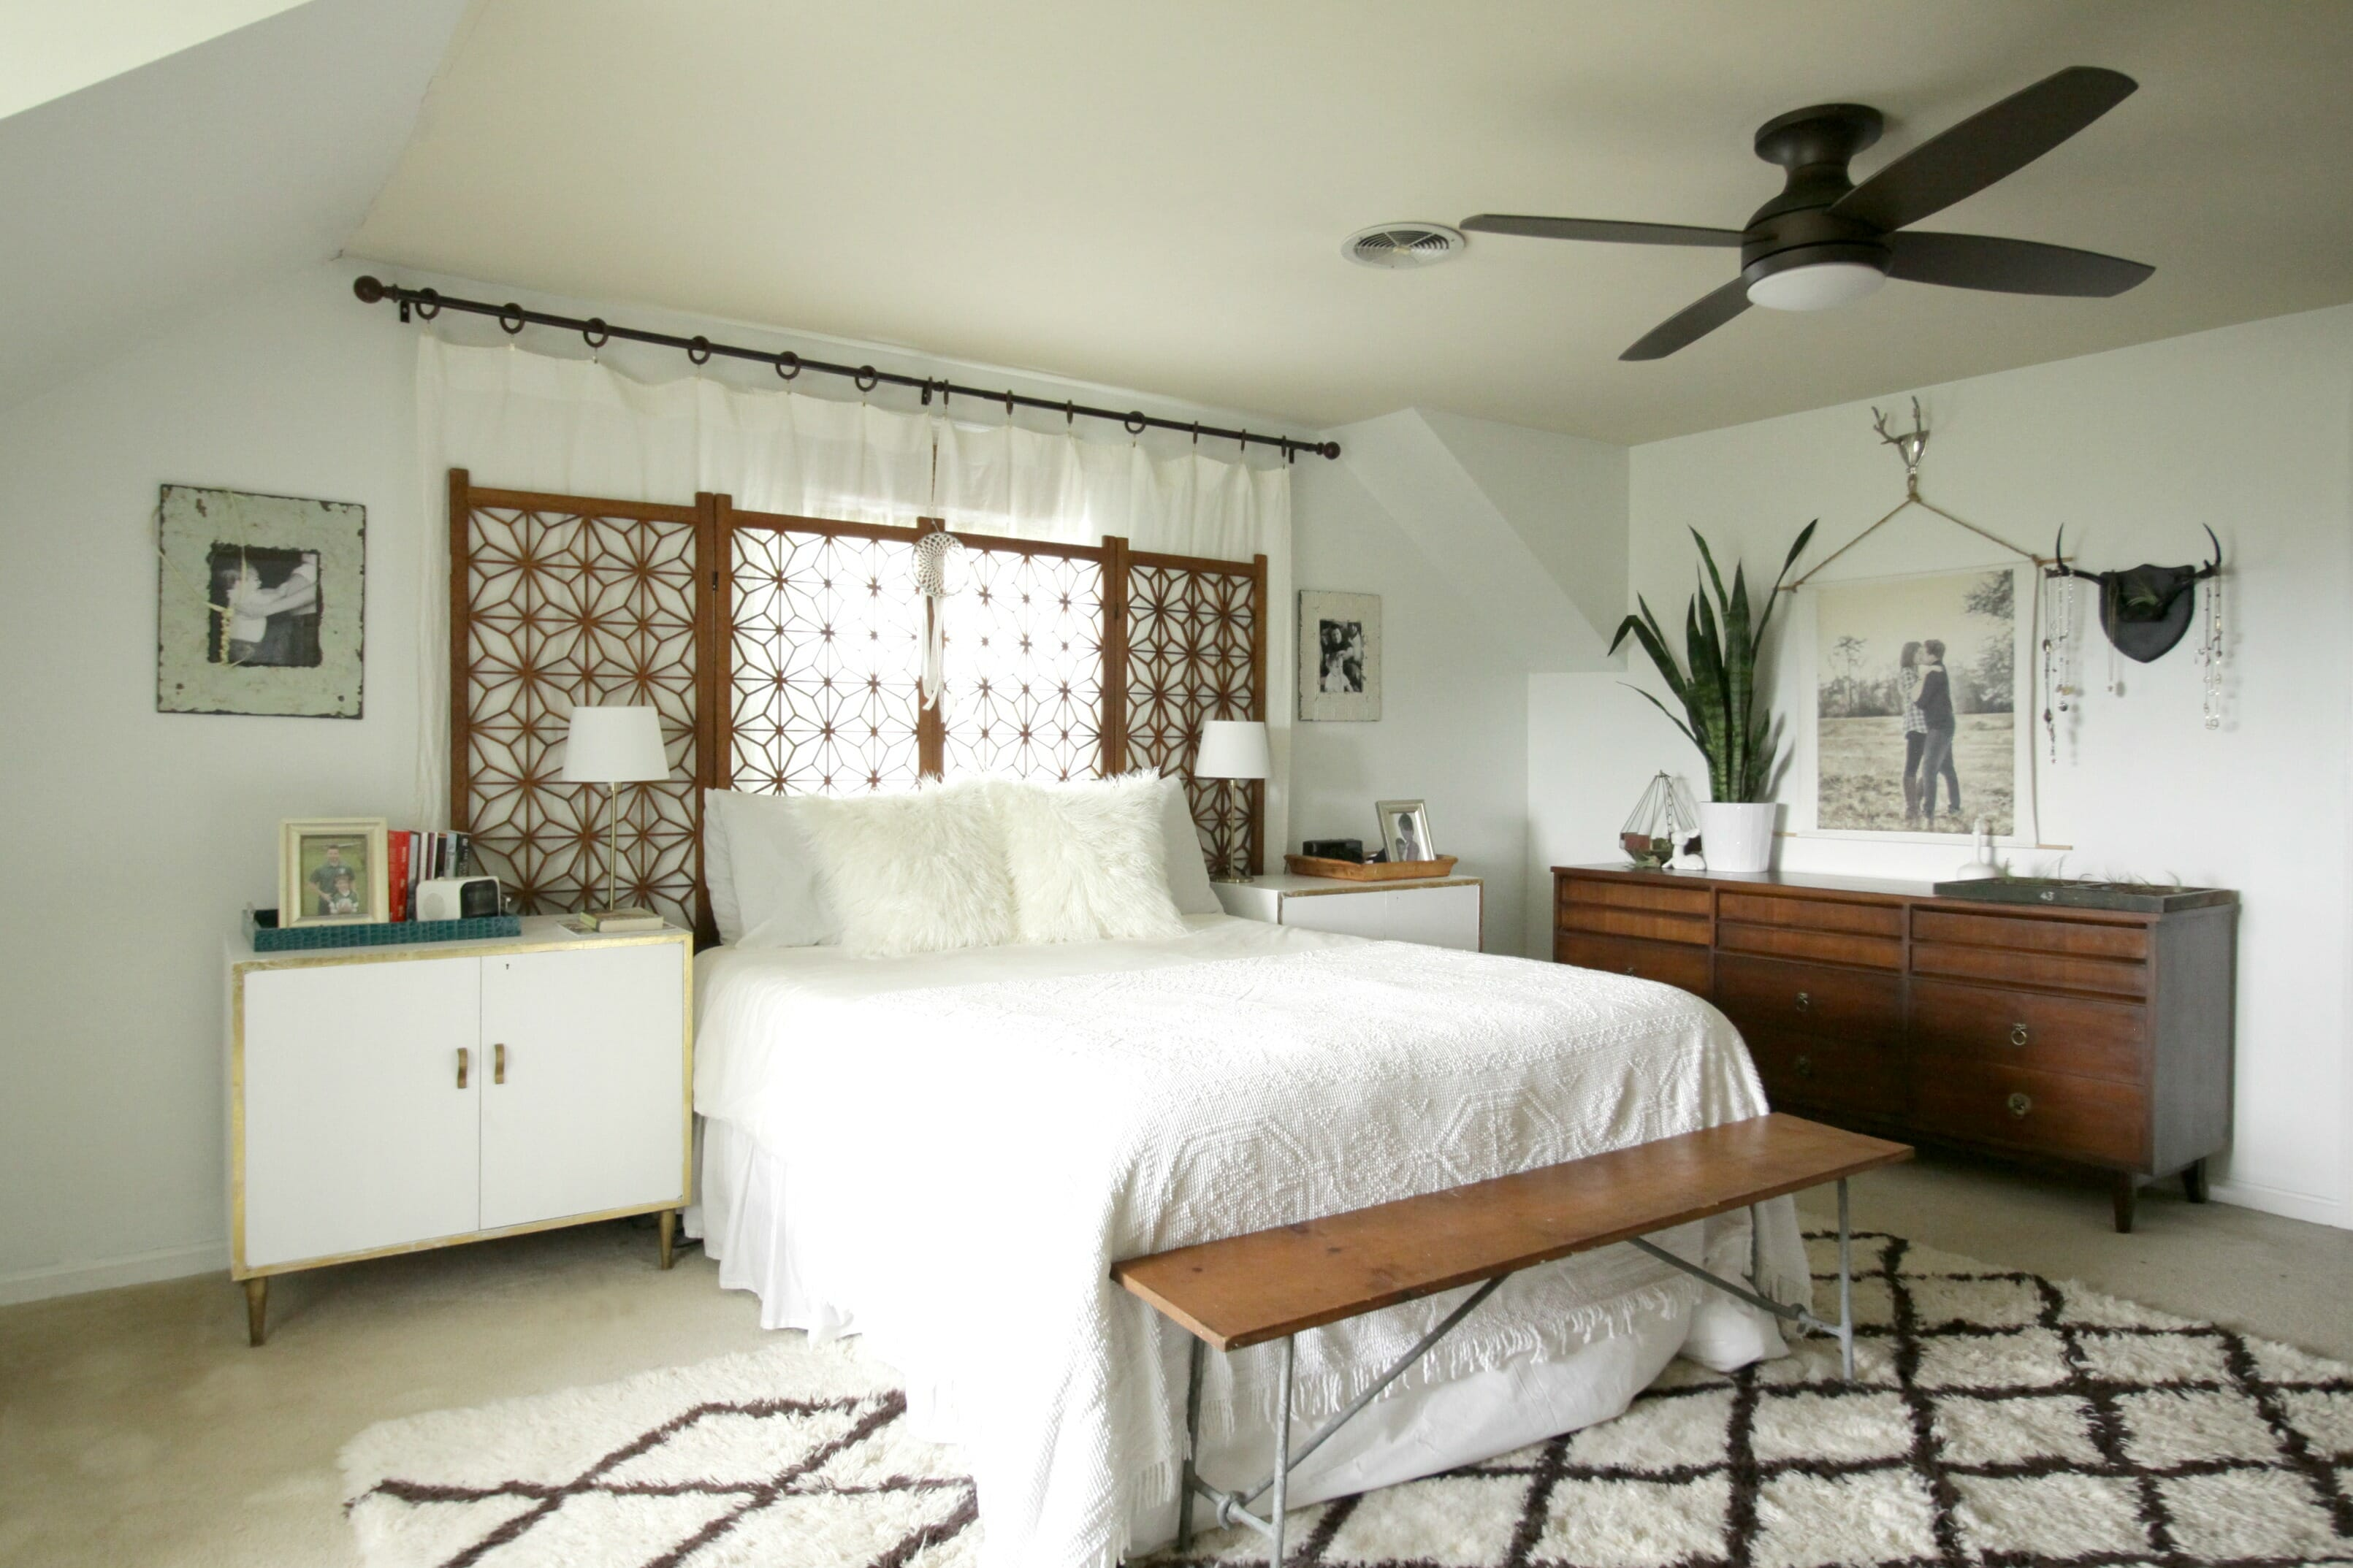 New ceiling fan in the master bedroom cassie bustamante modern bohemian bedroom with lamps plus ceiling lightfan aloadofball Images